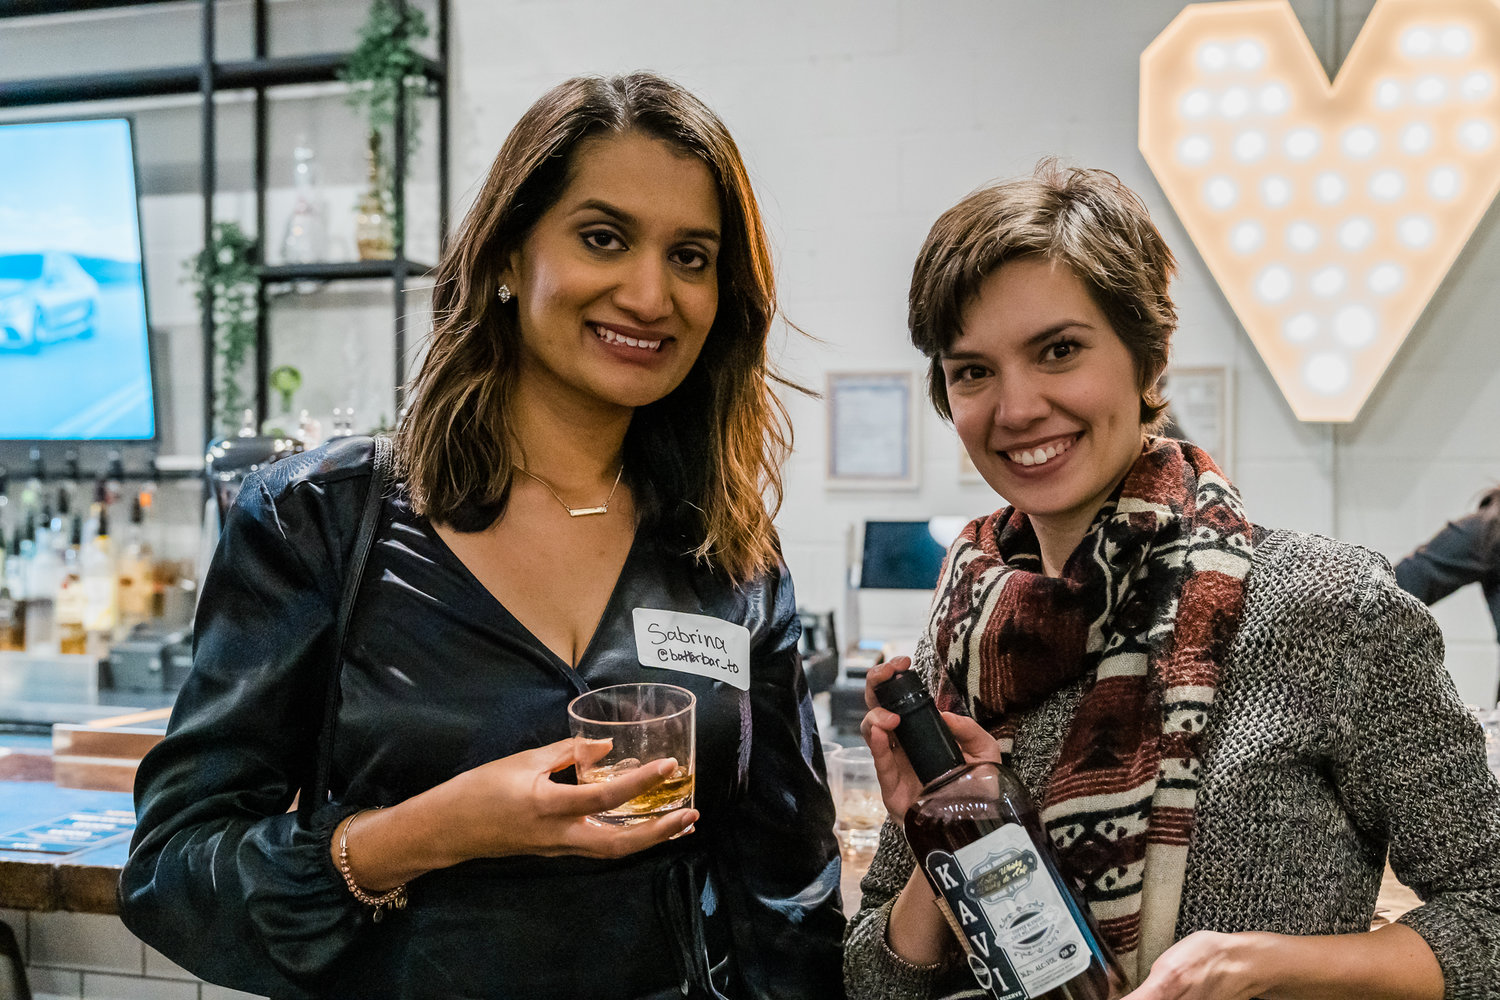 Photograph by  Shibby Photography   @shibbyphotography . Sabrina, founder of Batter Bar, with Jackie, co-founder of Kavi Whisky